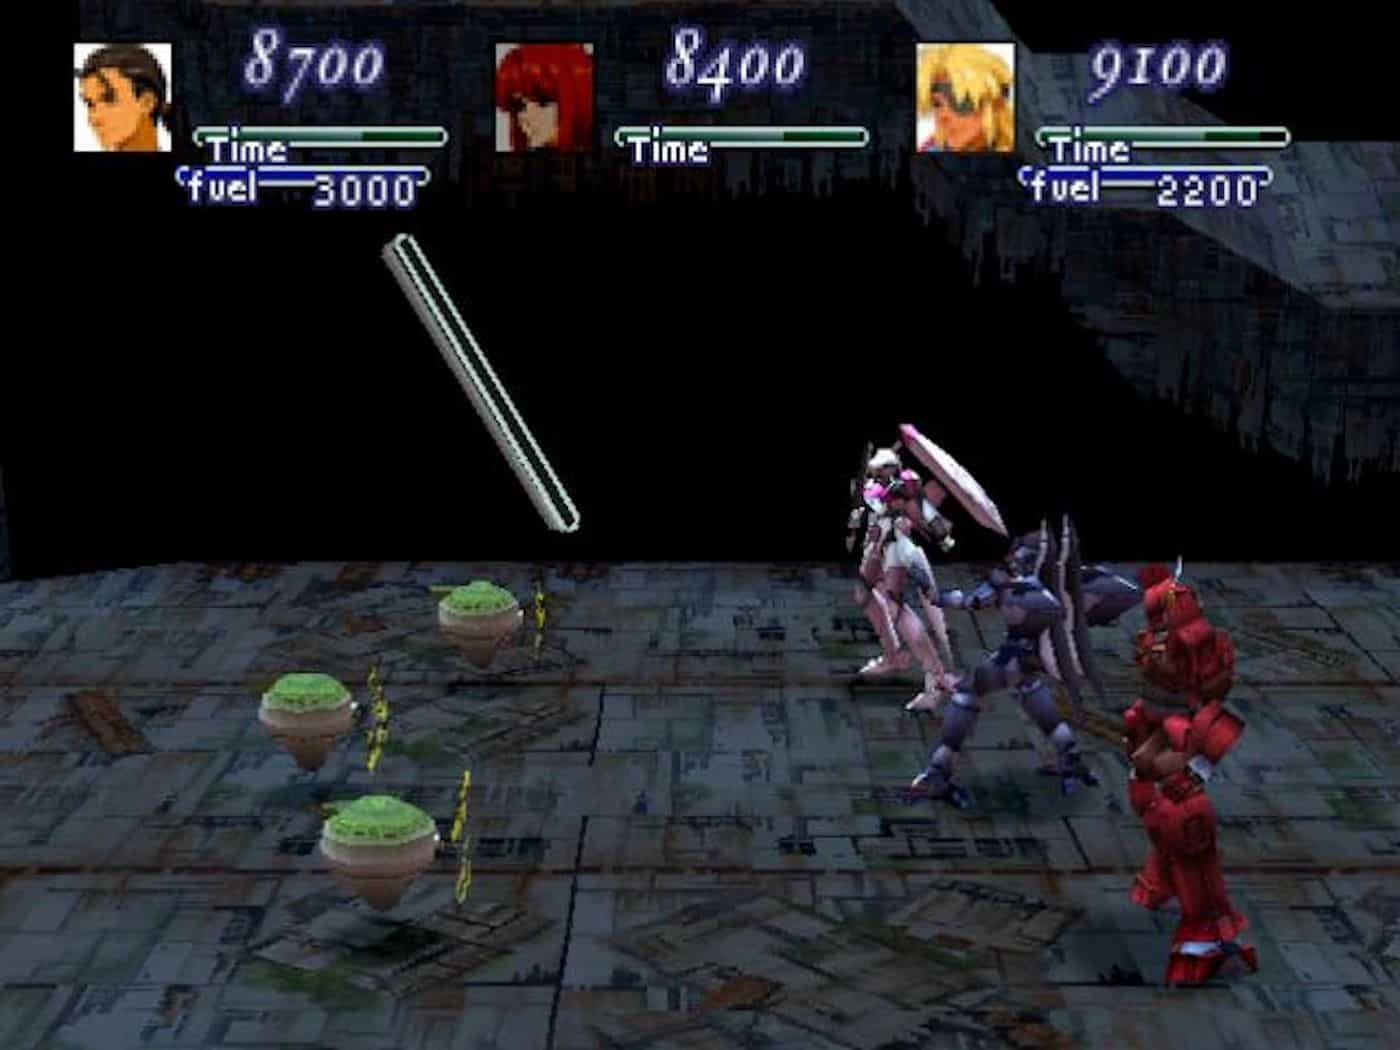 future of PlayStation past worried: PlayStation 3 Portable Vita PSP digital store closure classic PlayStation 1 2 games RPGs gone Xenogears